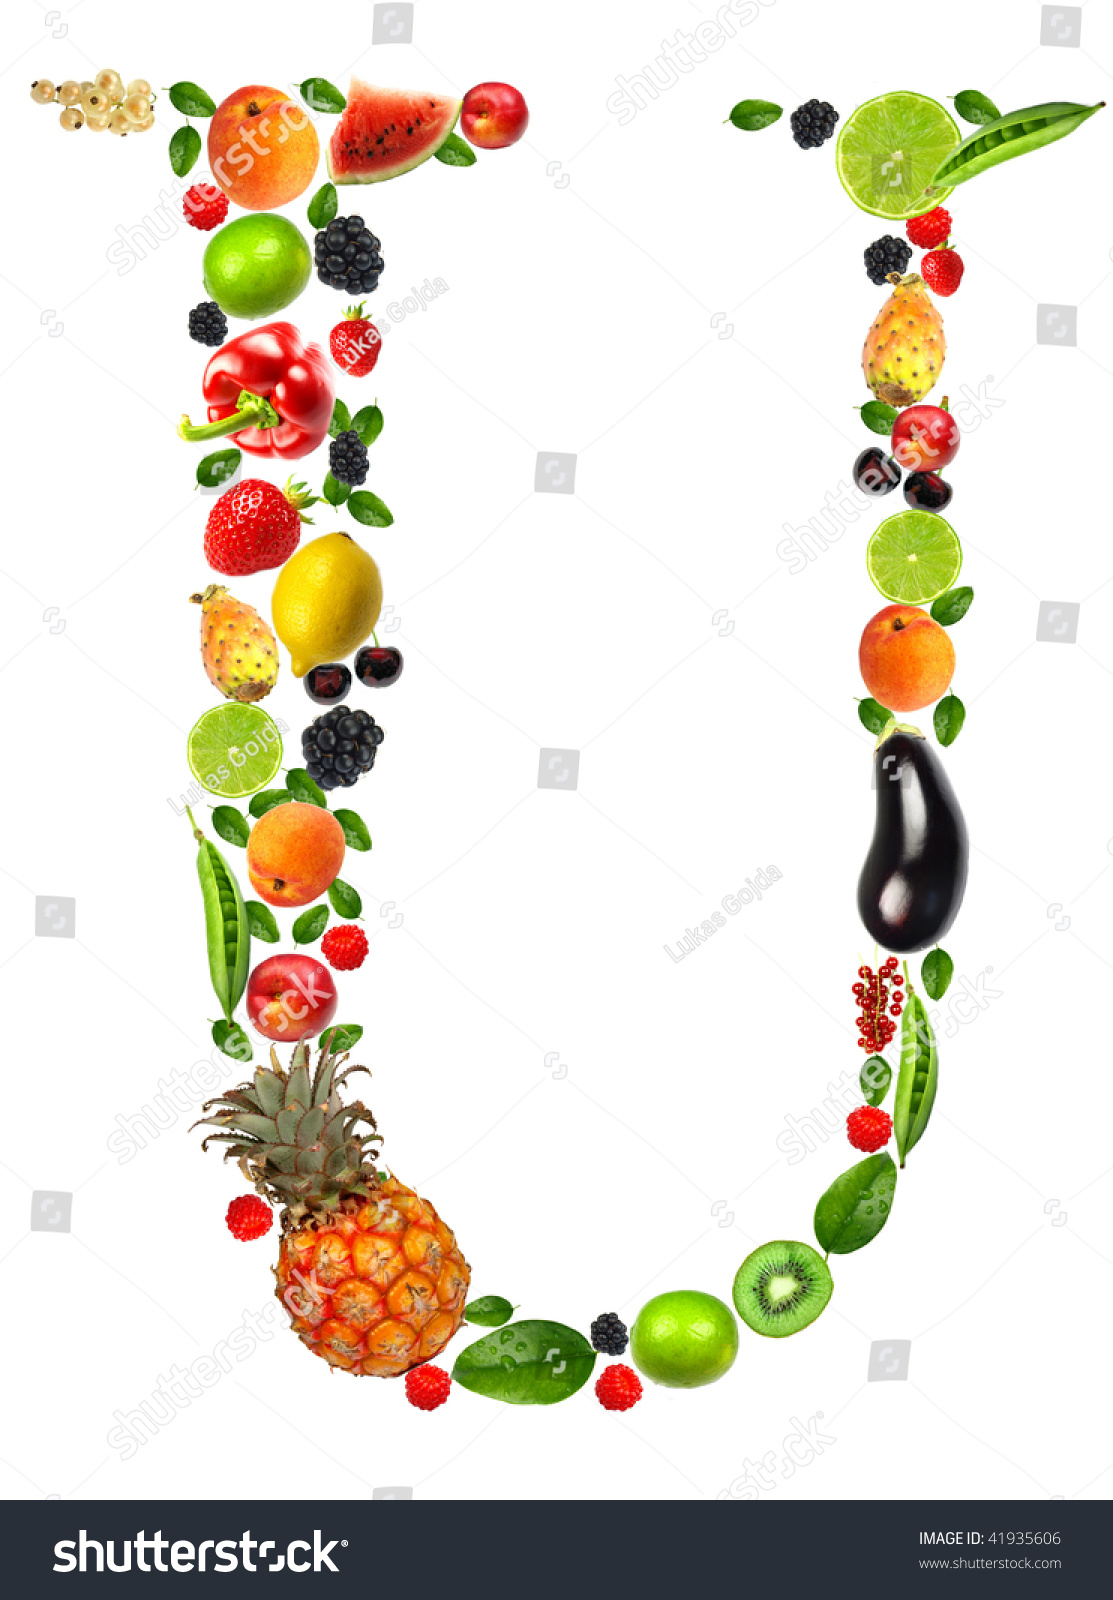 Fruits That Start With The Letter U The Best Fruit 2018